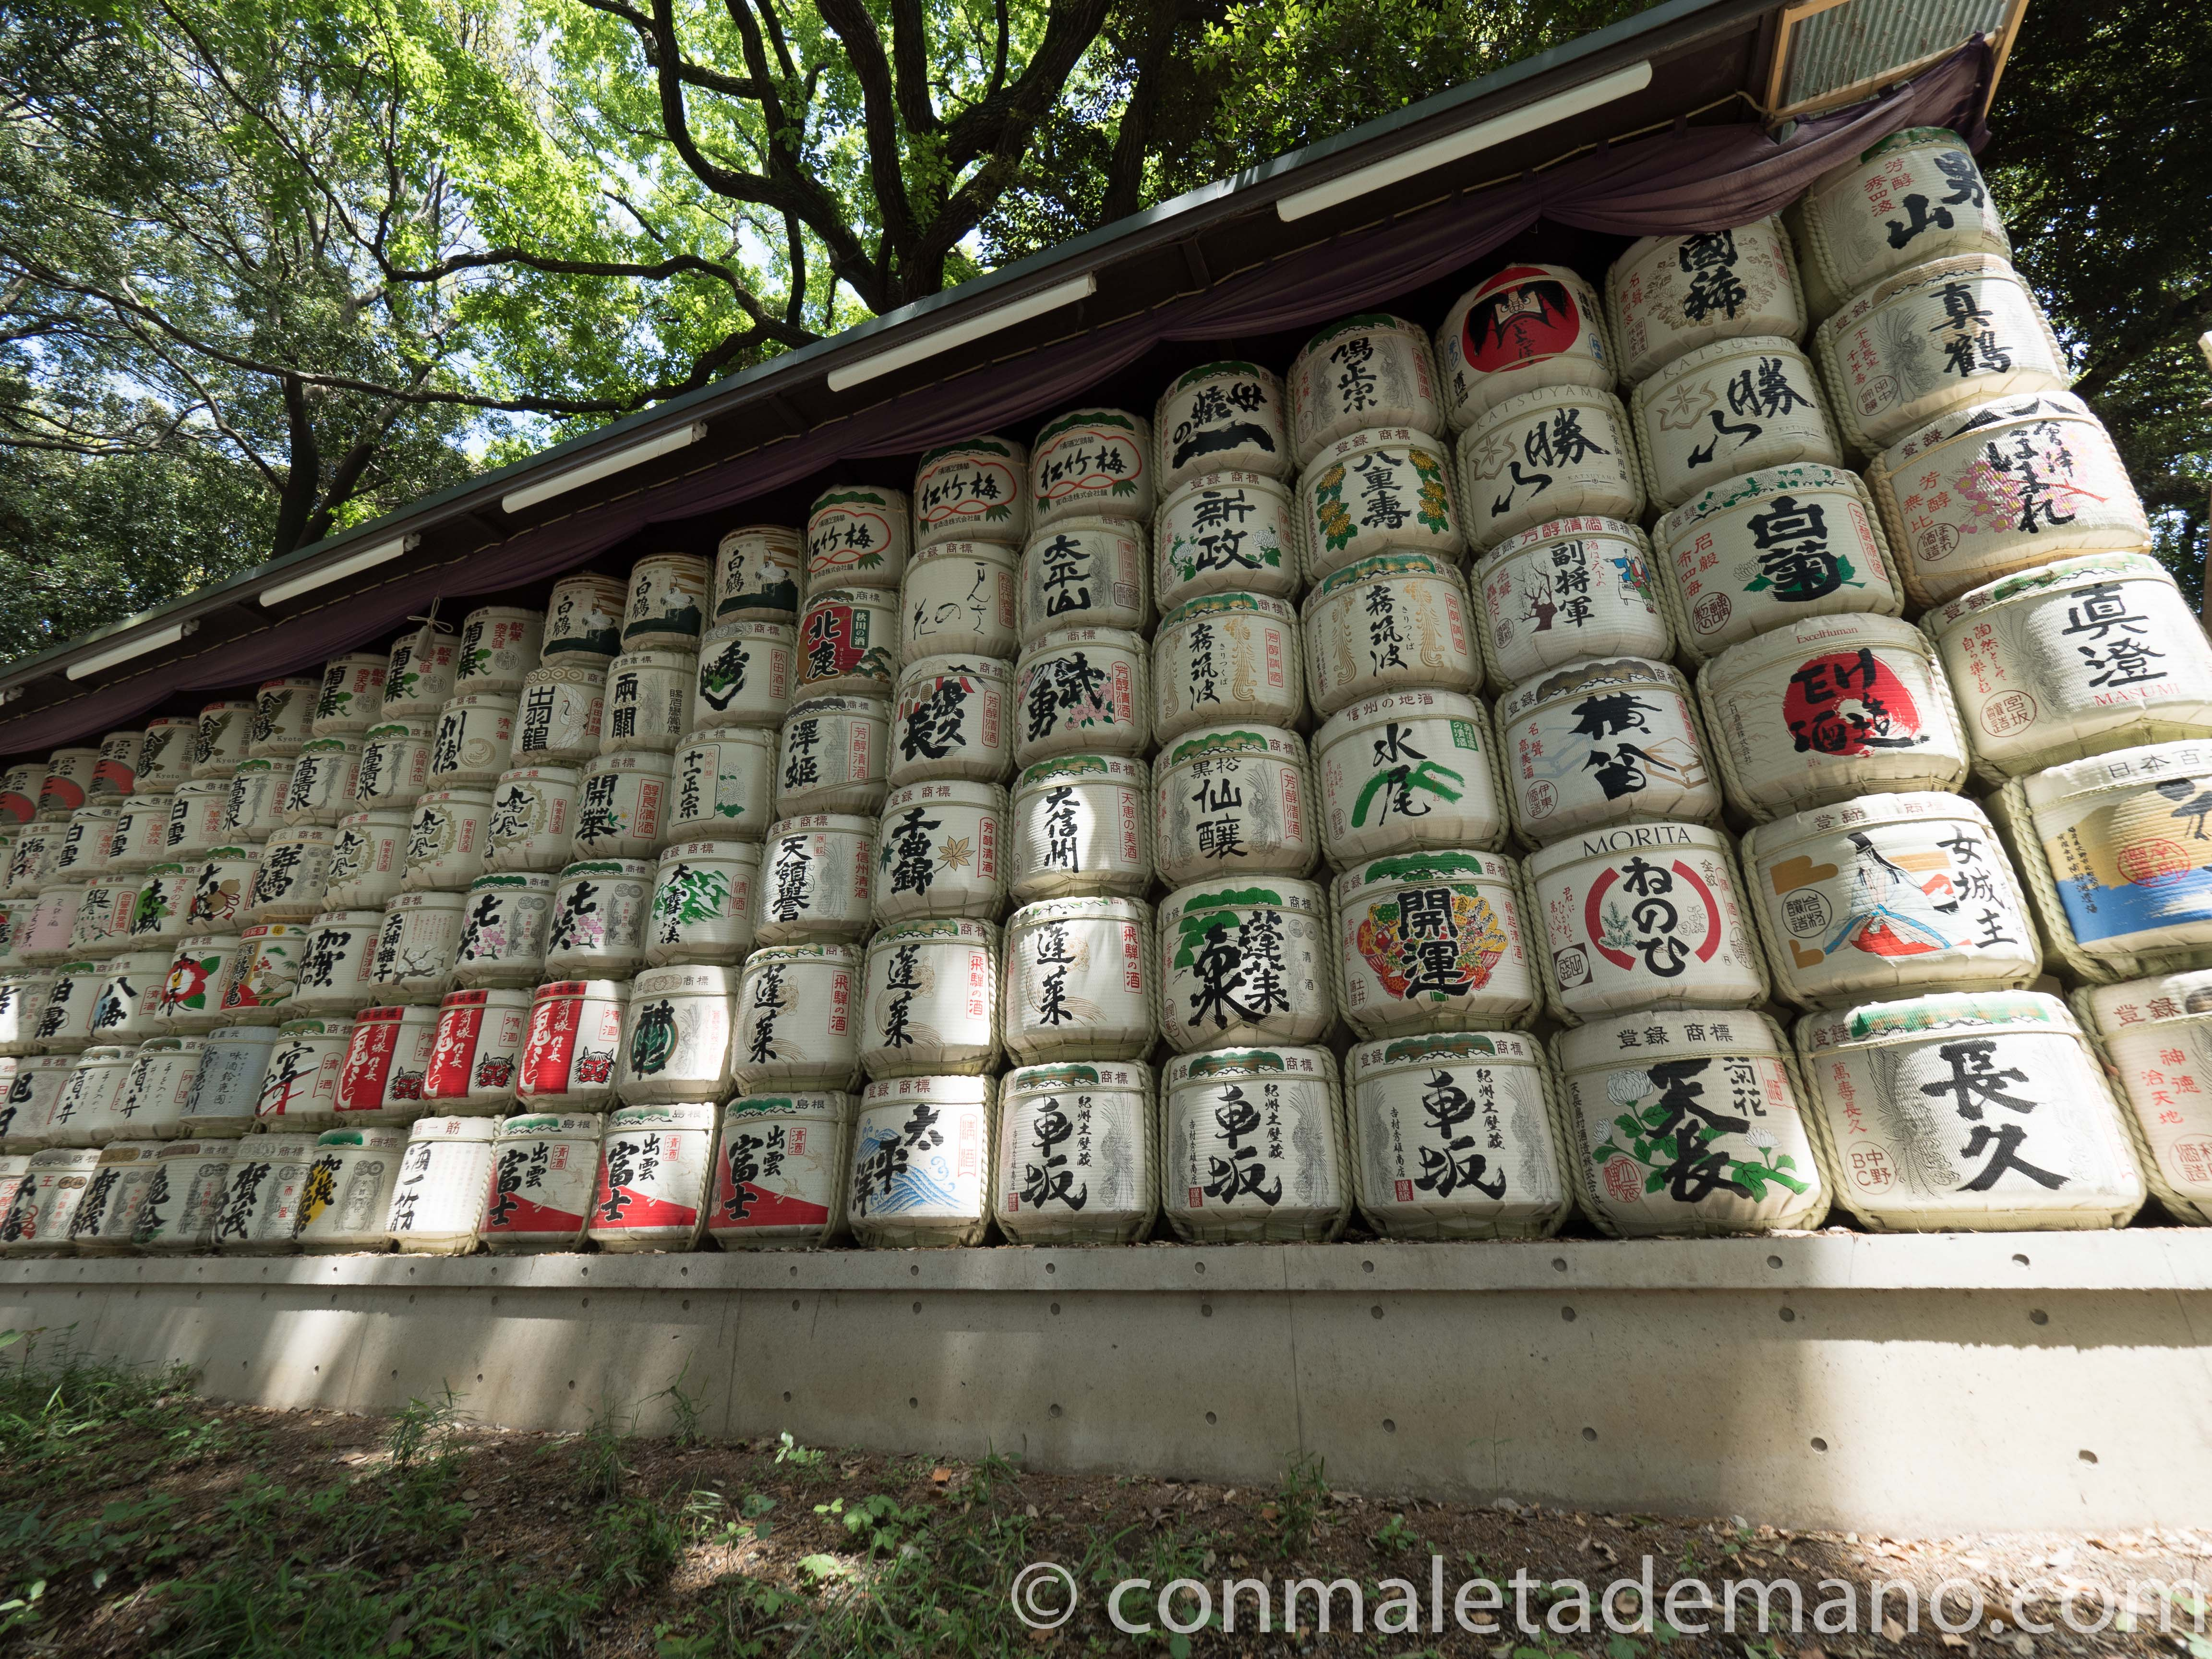 Barriles de sake decorados